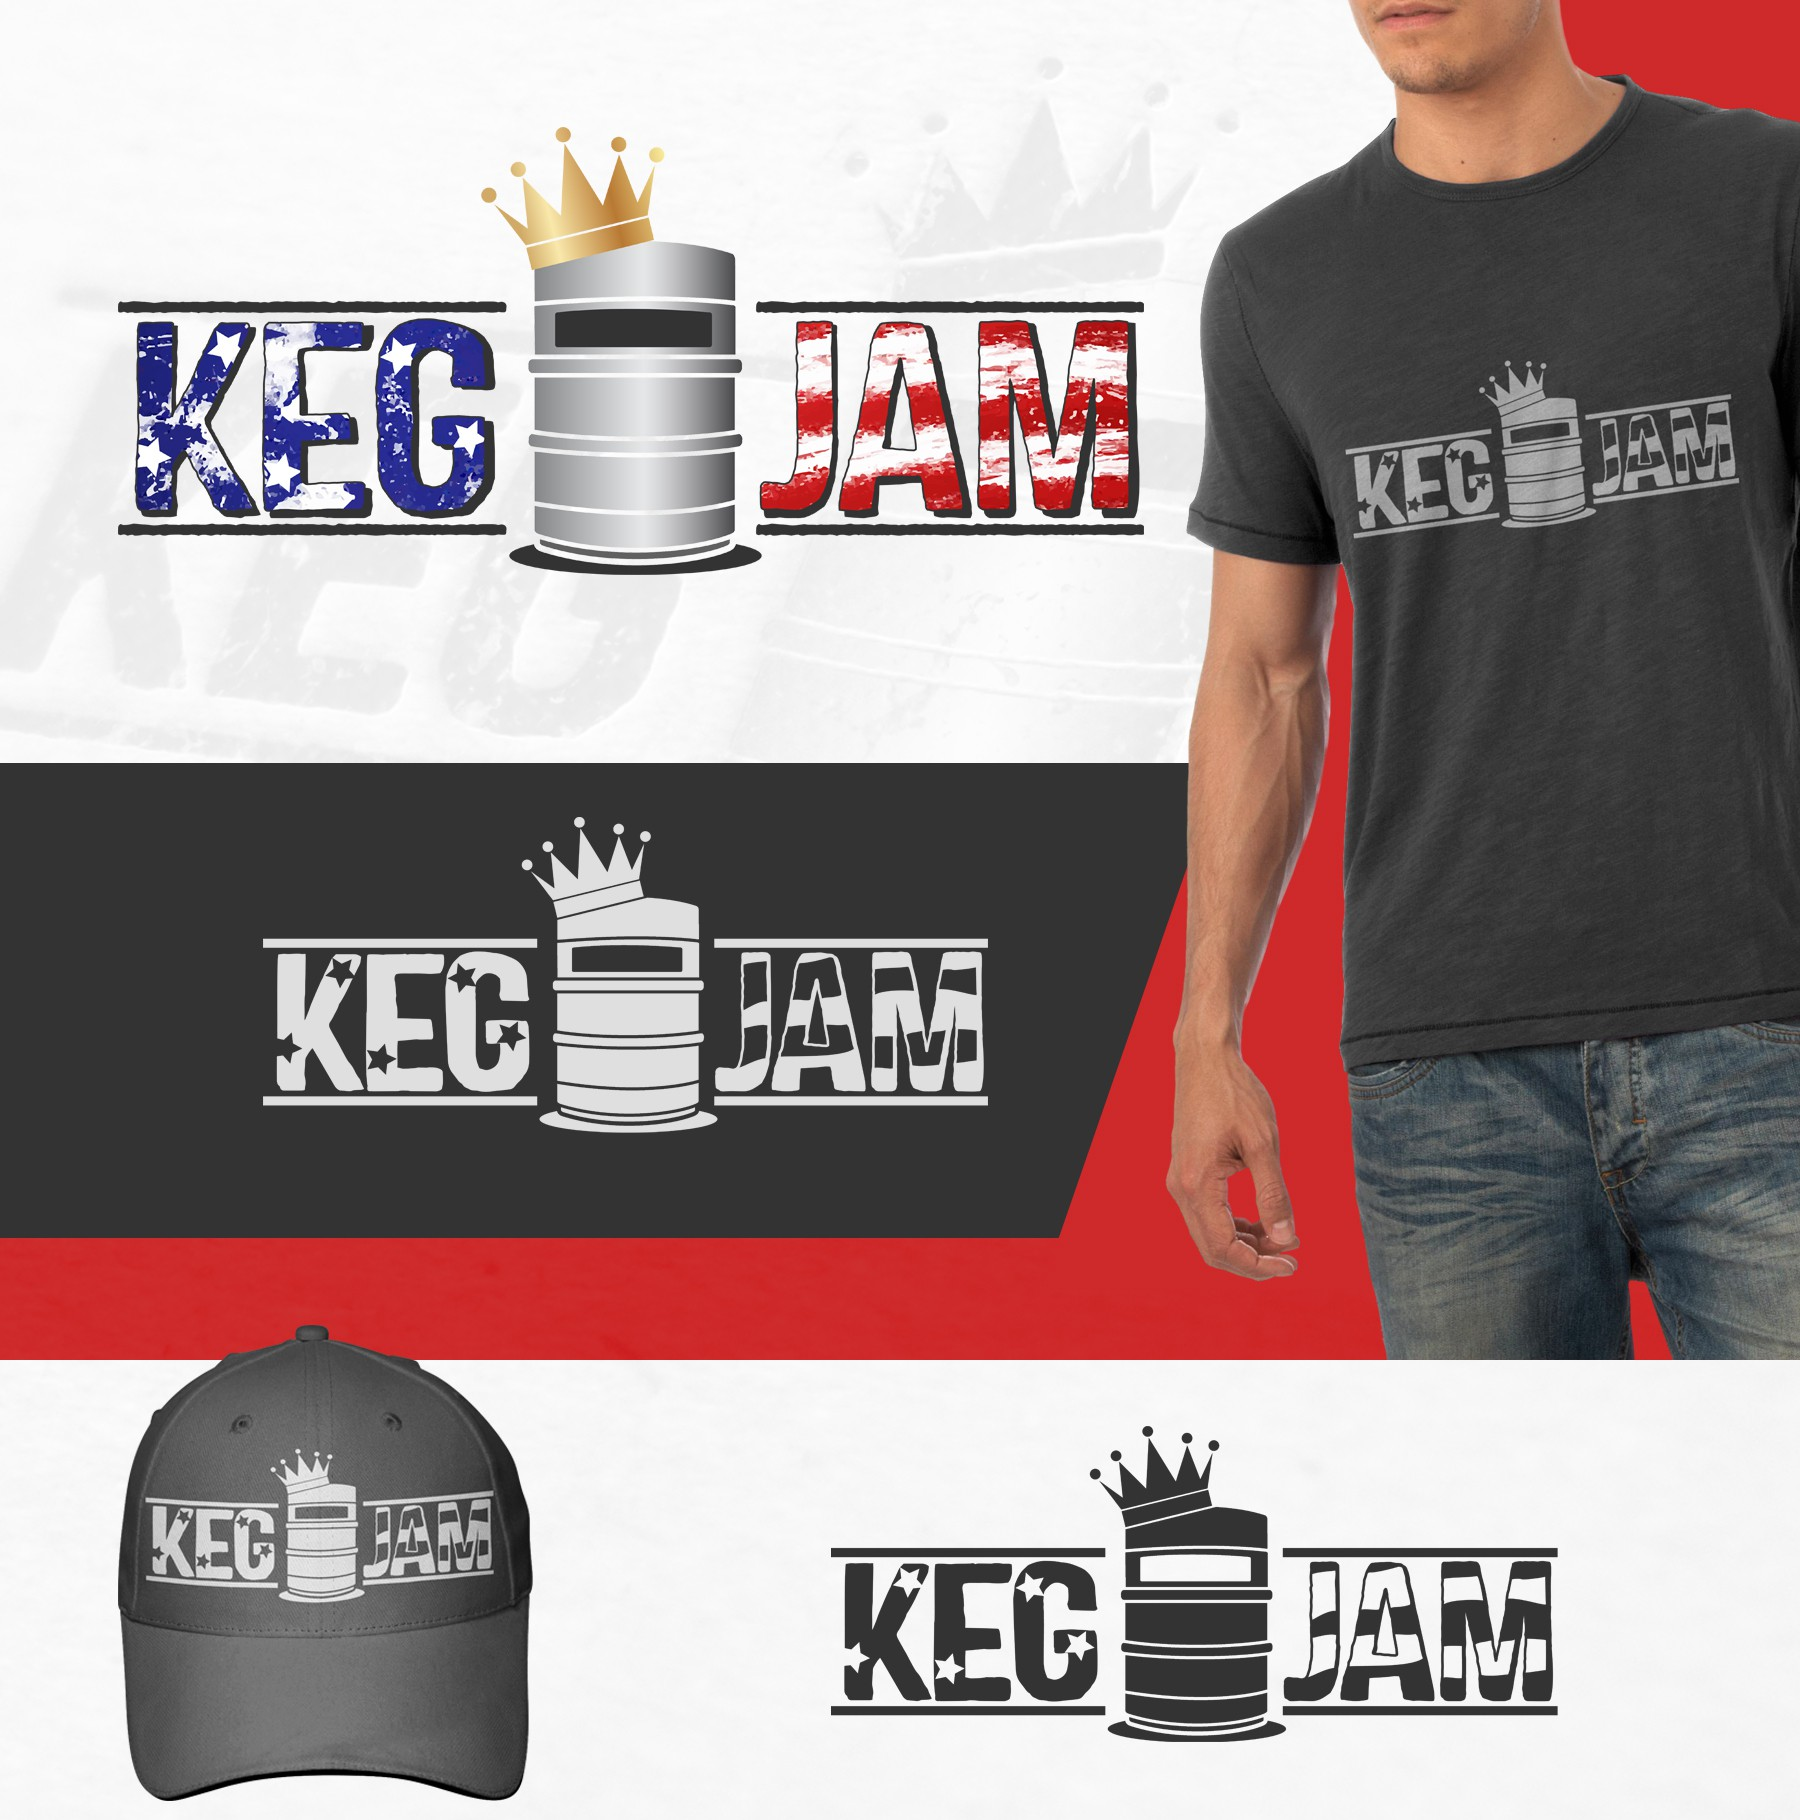 Keg Jam - America's Most Competitive Social Event!